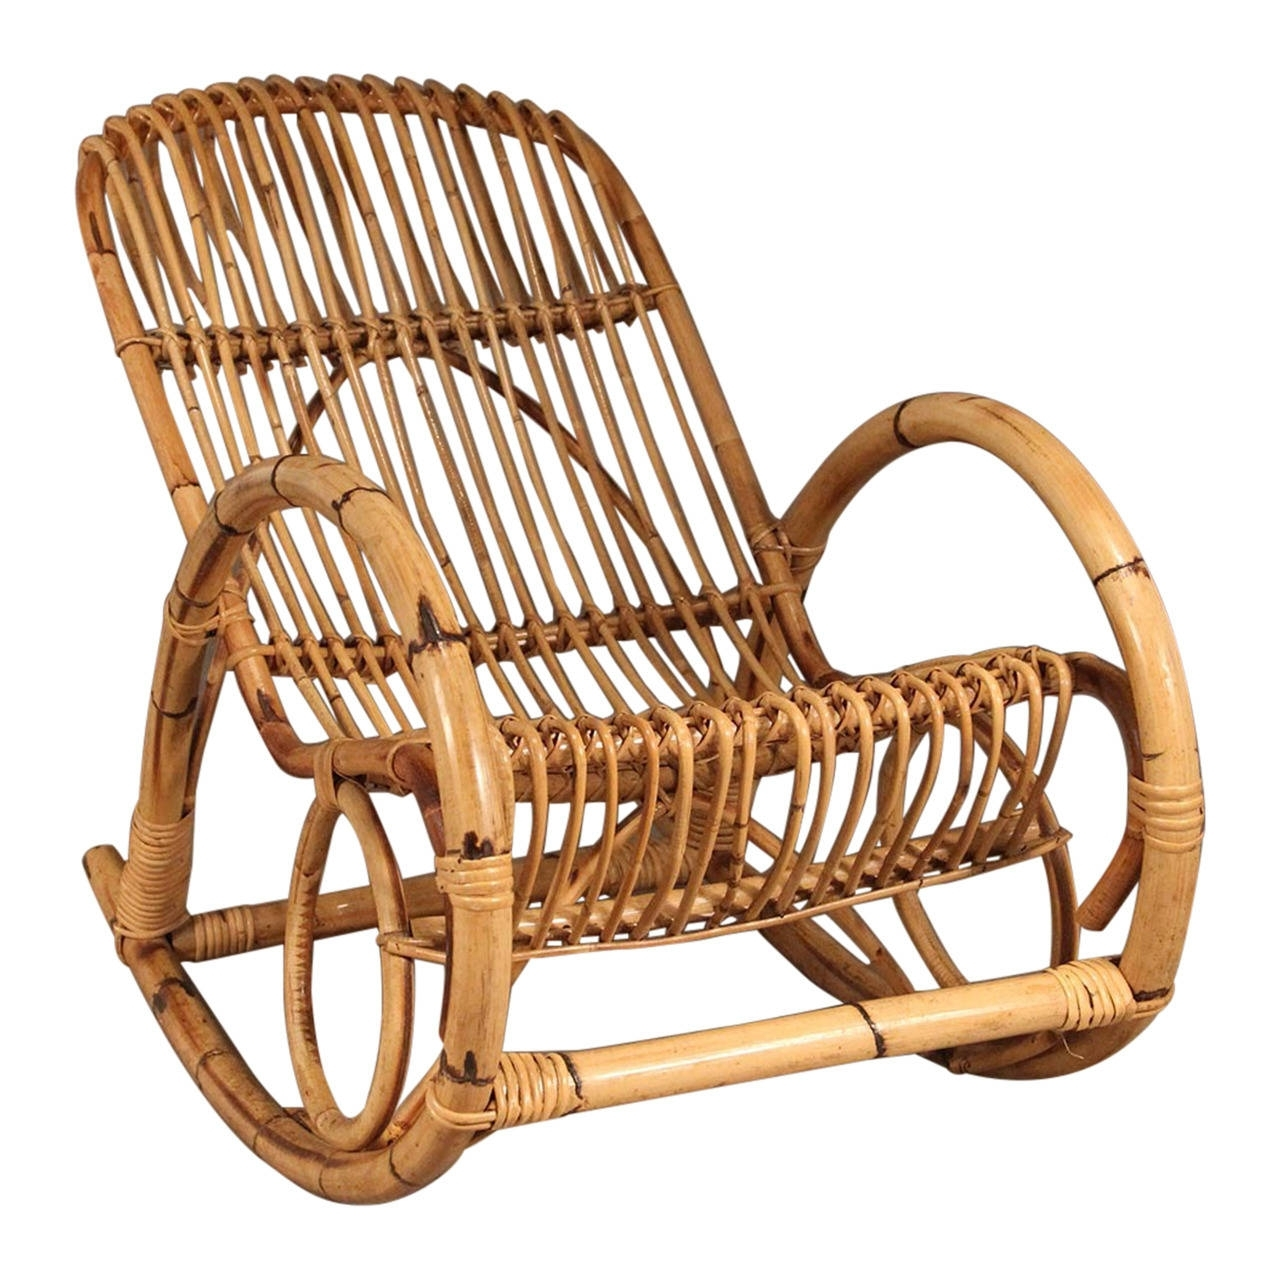 Franco Albini Style Mid Century Rattan Rocking Chair For Sale At 1Stdibs Inside Latest Wicker Rocking Chair With Magazine Holder (View 2 of 15)